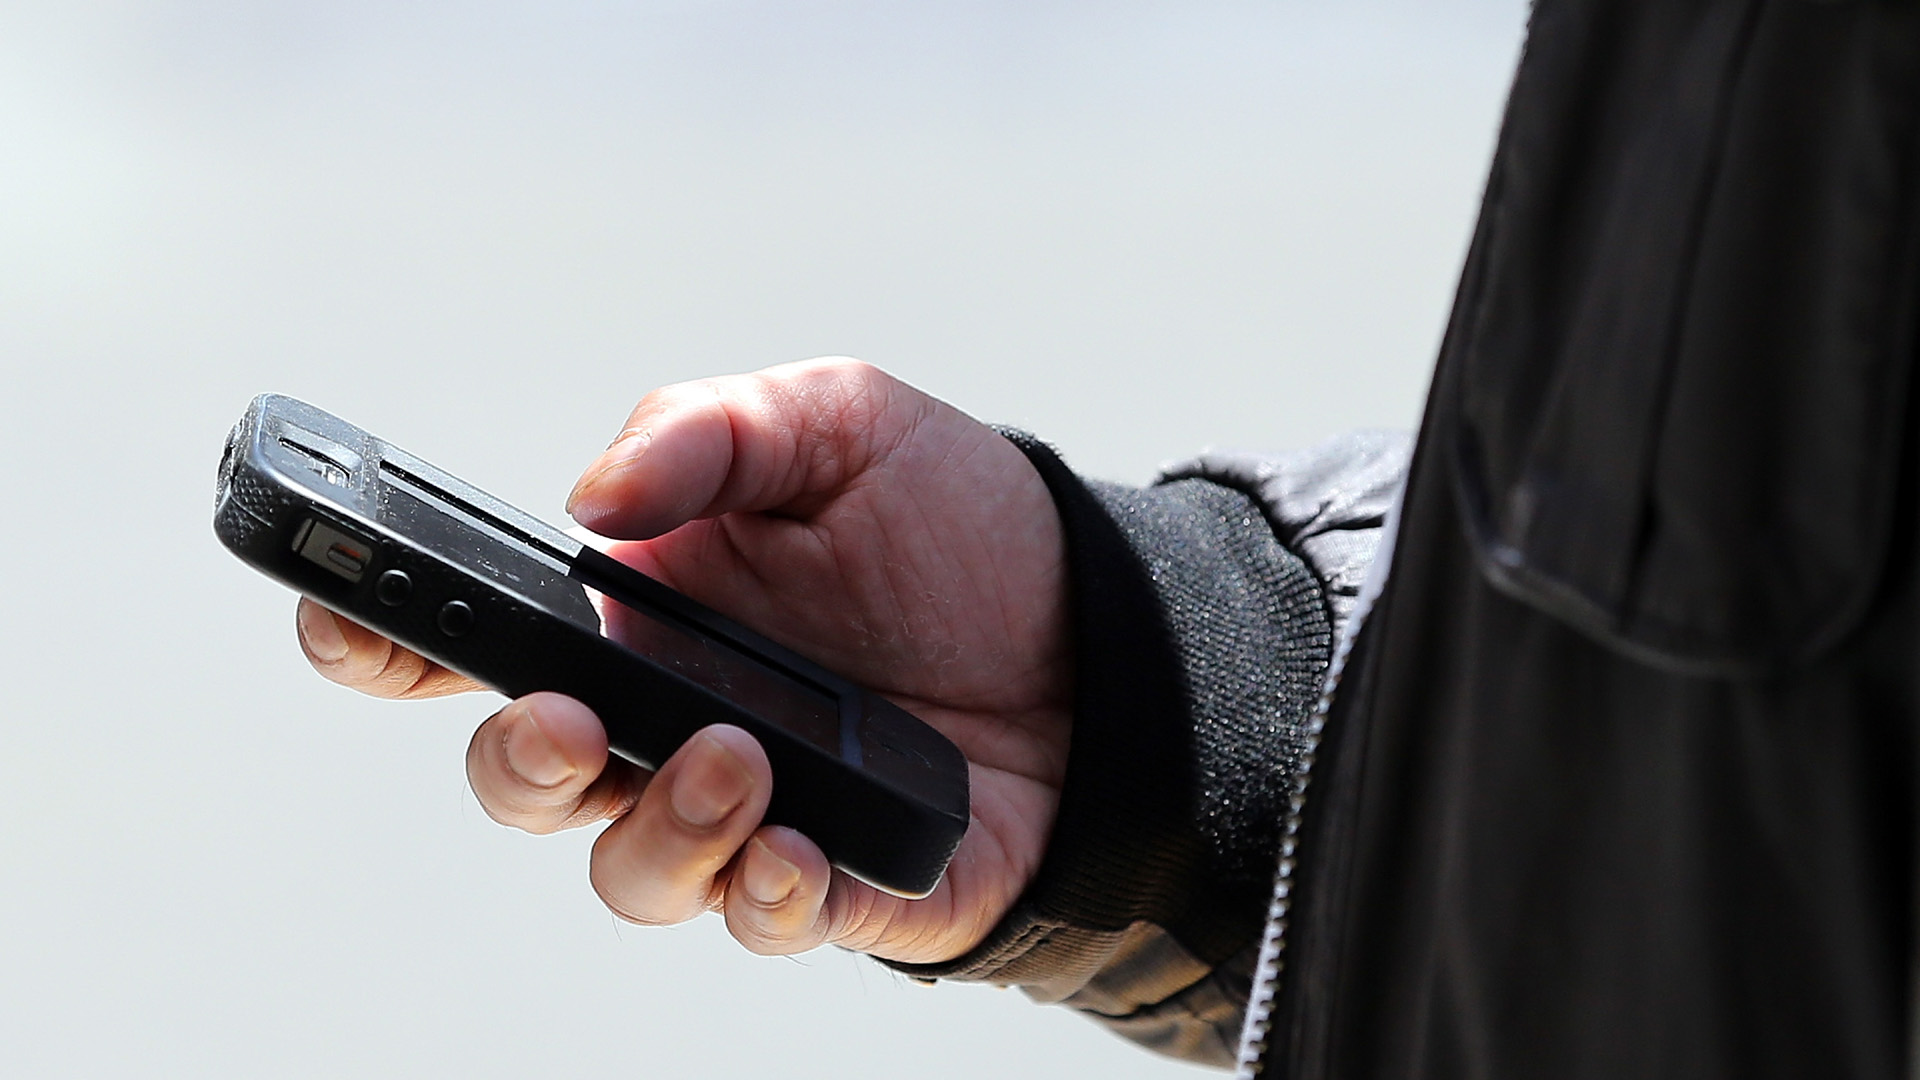 Pedestrian using smartphone while walking, cell phone, person walking55647626-159532